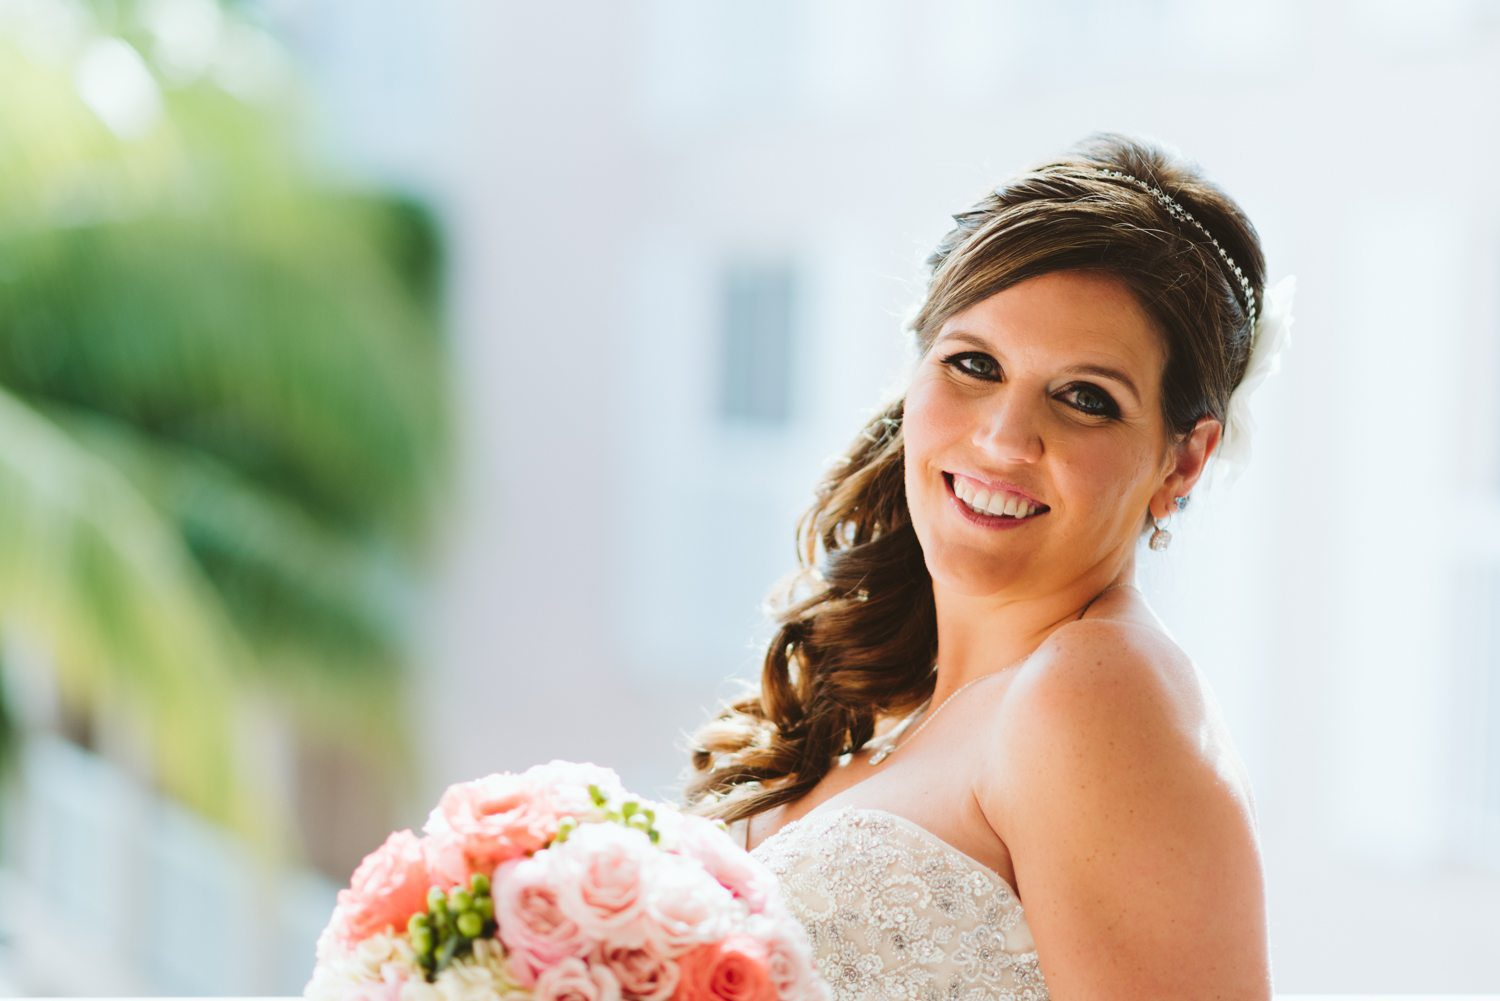 Erin Colin Fort Zachary Taylor Rooftop Cafe Key West Wedding Photographer 10 - Erin & Colin   Key West Wedding Photographer   Fort Zachary Taylor